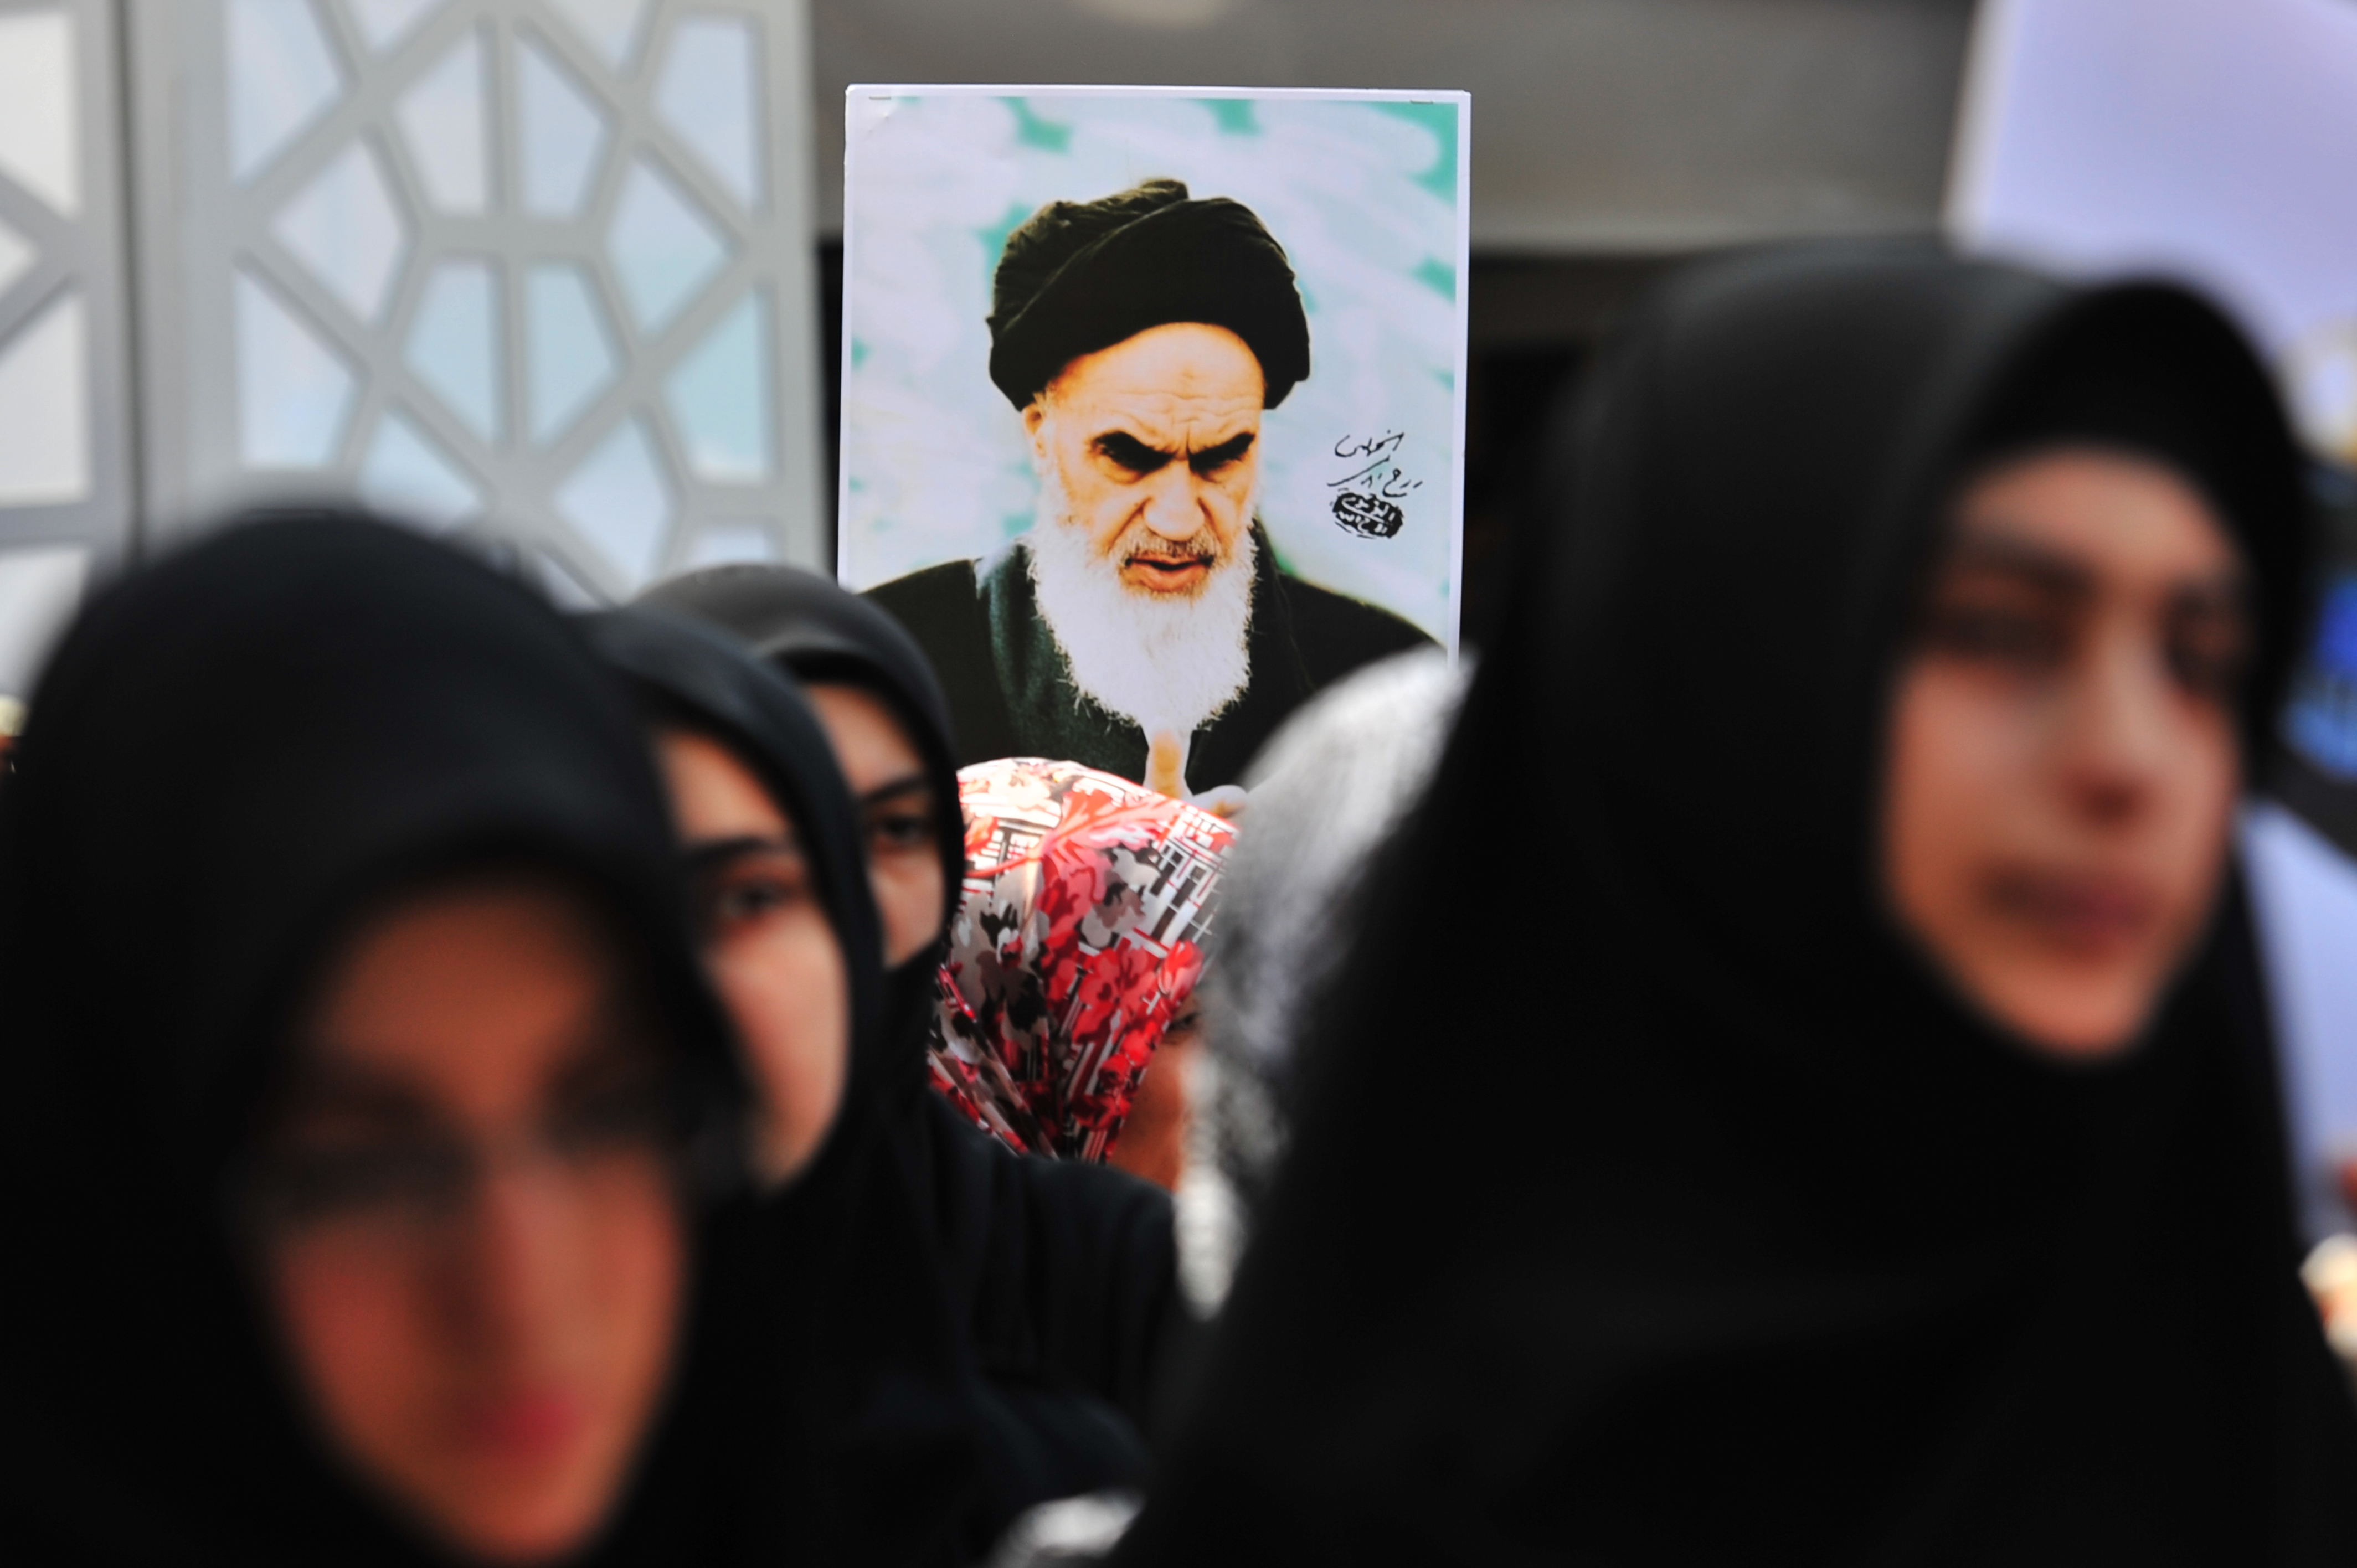 A Turkish Muslim woman holds a picture of Iran's late leader Ayatollah Khomeini during a protest in front of Beyazit Mosque after a Friday pray in Istanbul on Aug. 26, 2011. (MUSTAFA OZER/AFP/Getty Images)